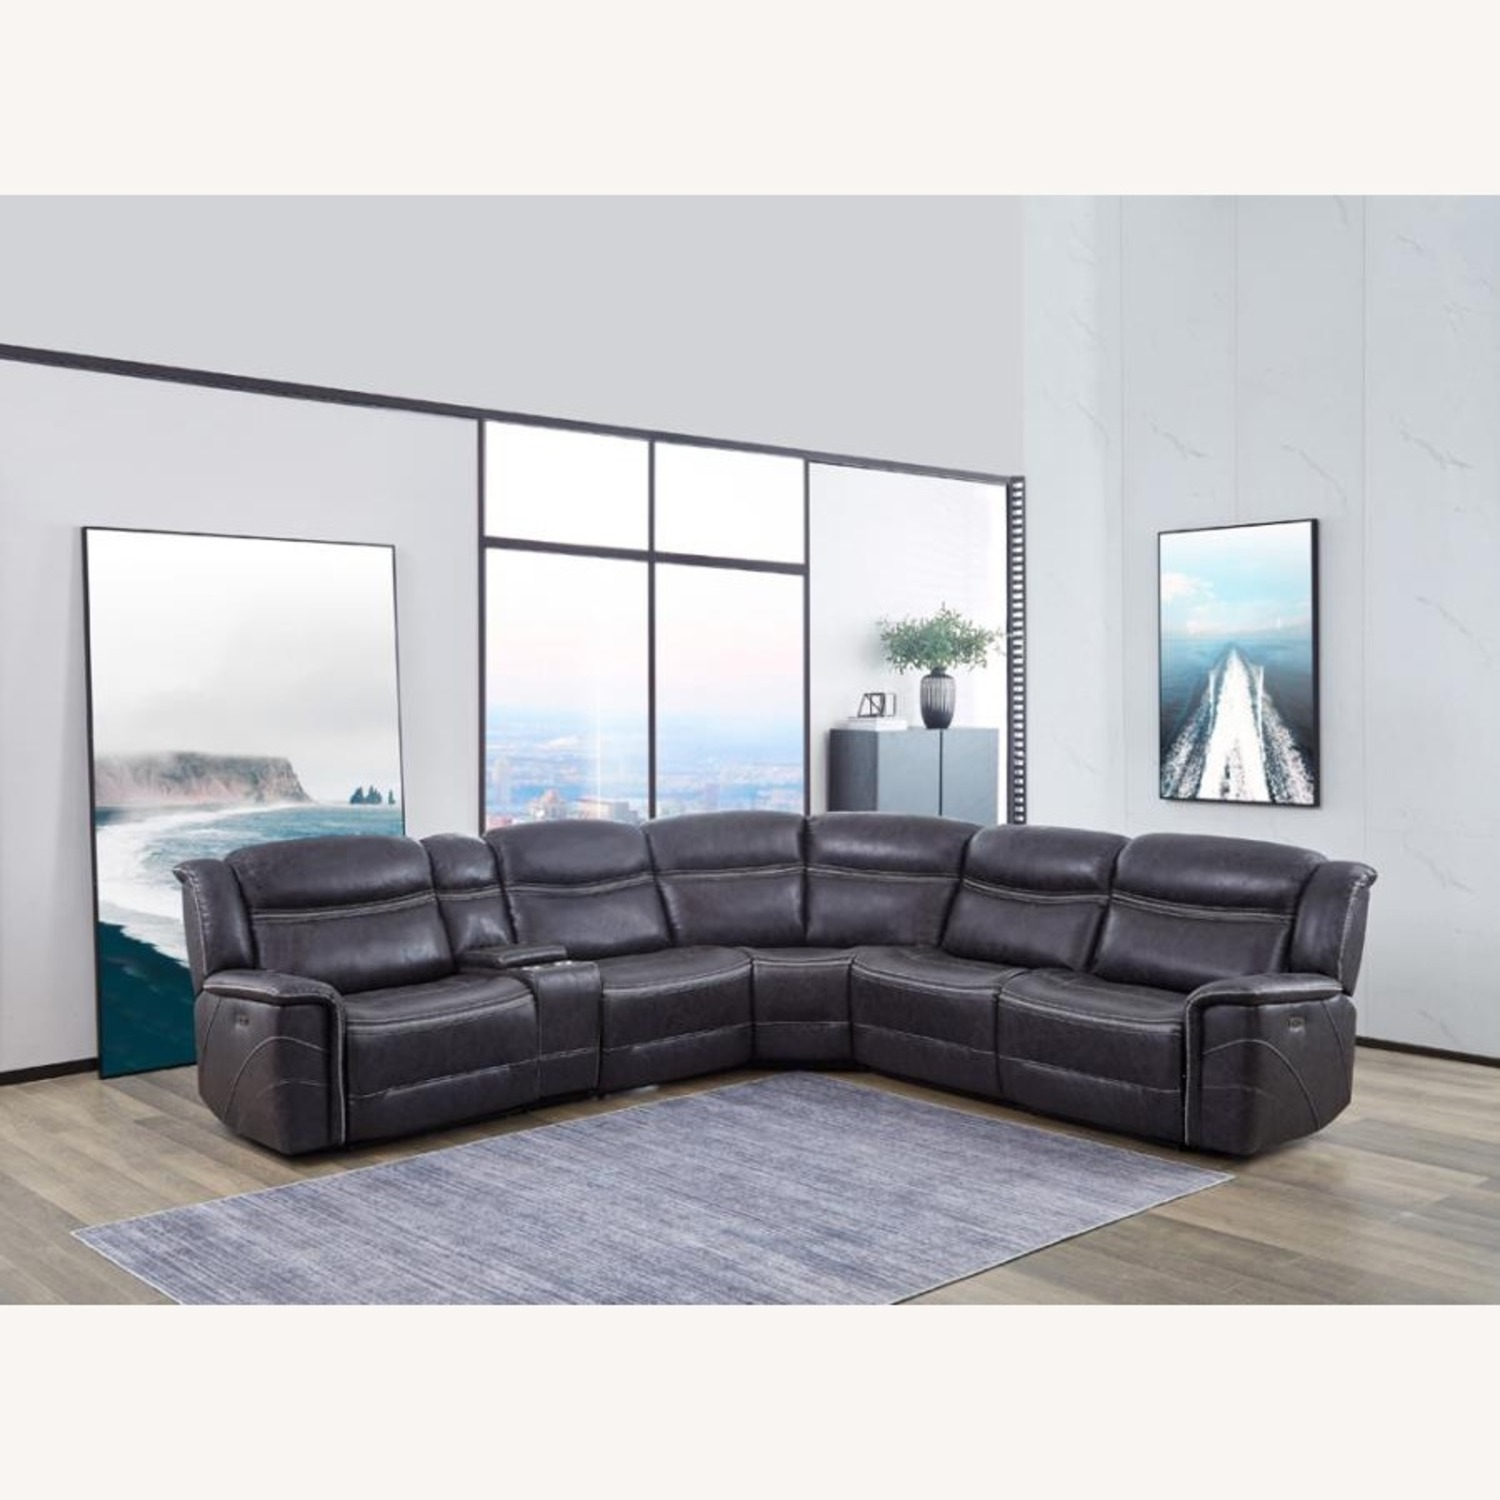 6-Piece Motion Sectional In Charcoal Faux Suede - image-6